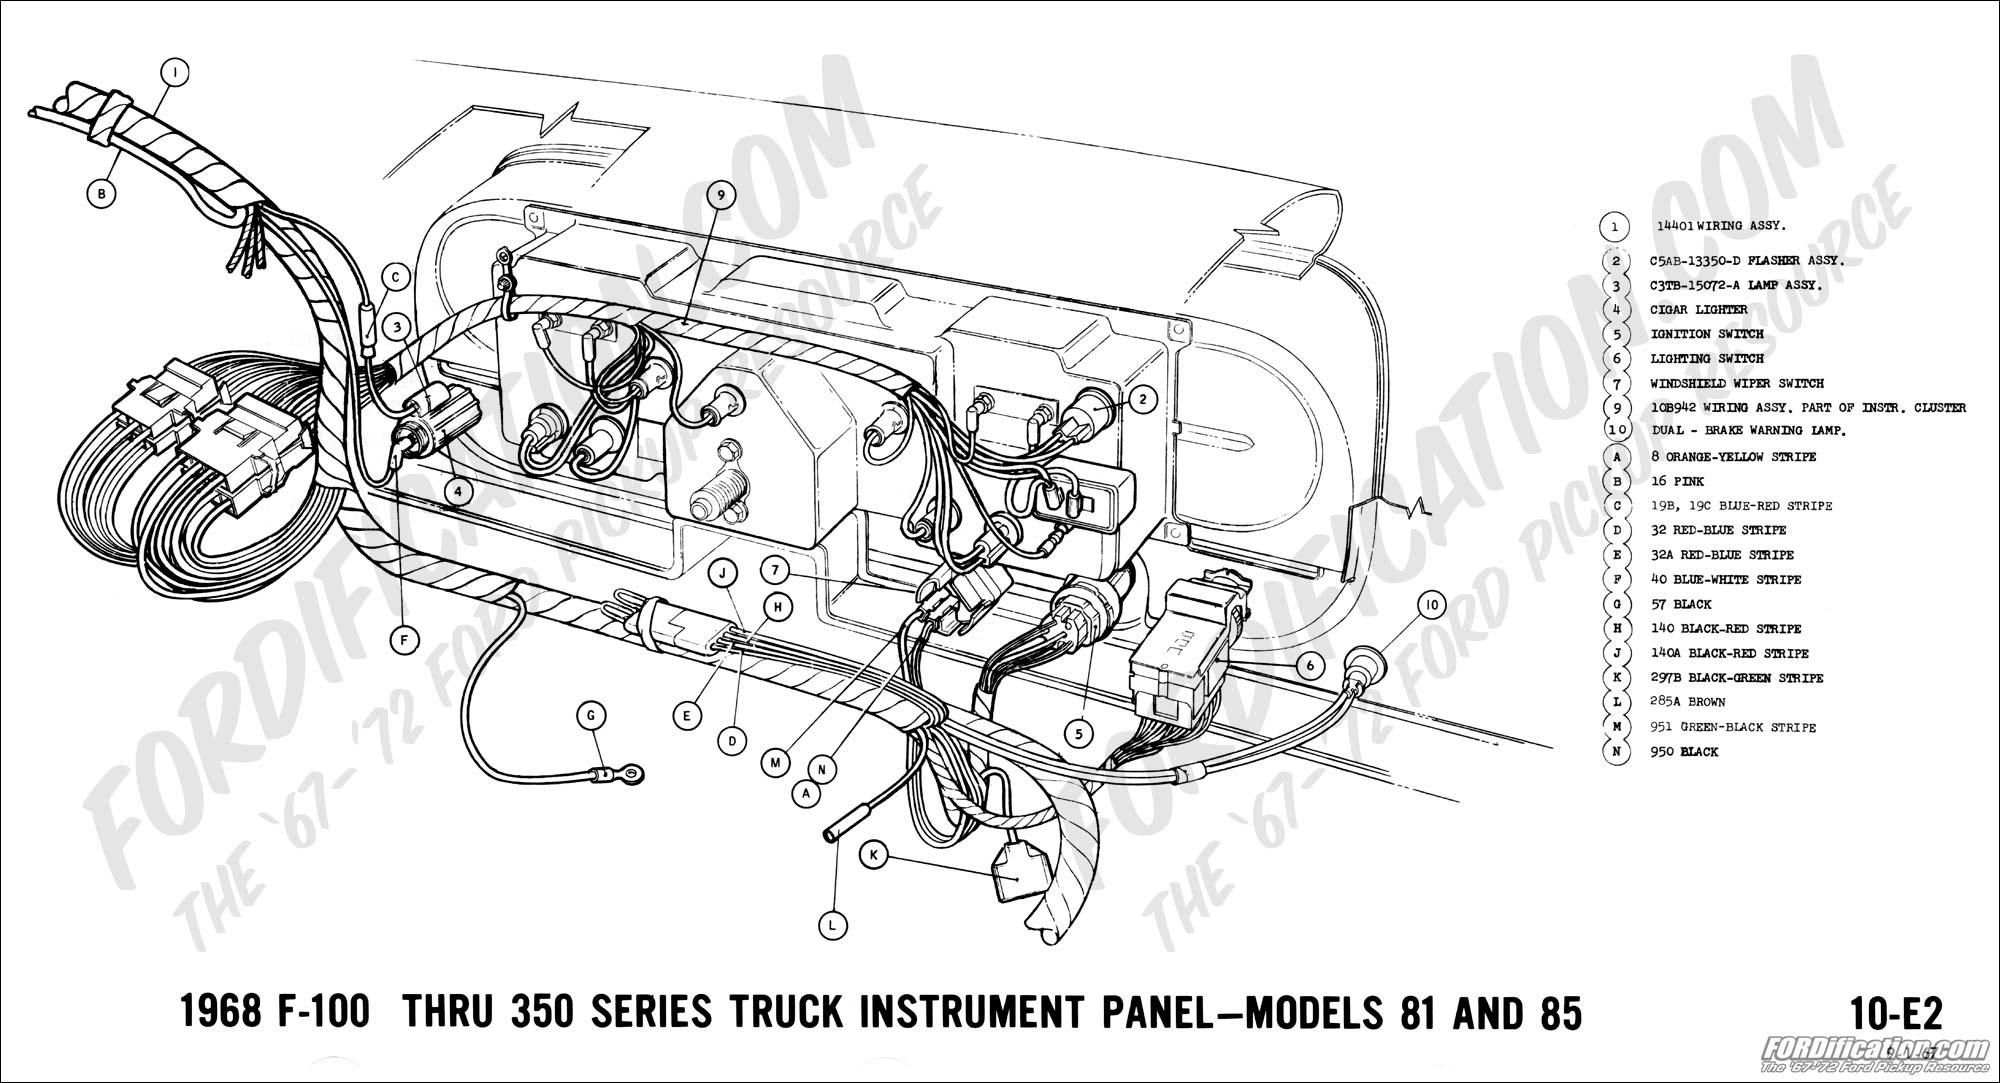 2013 Chevy Impala Starting Wiring Diagram Will Be A 2003 Ssr Ford Truck Technical Drawings And Schematics Section H Tail Light